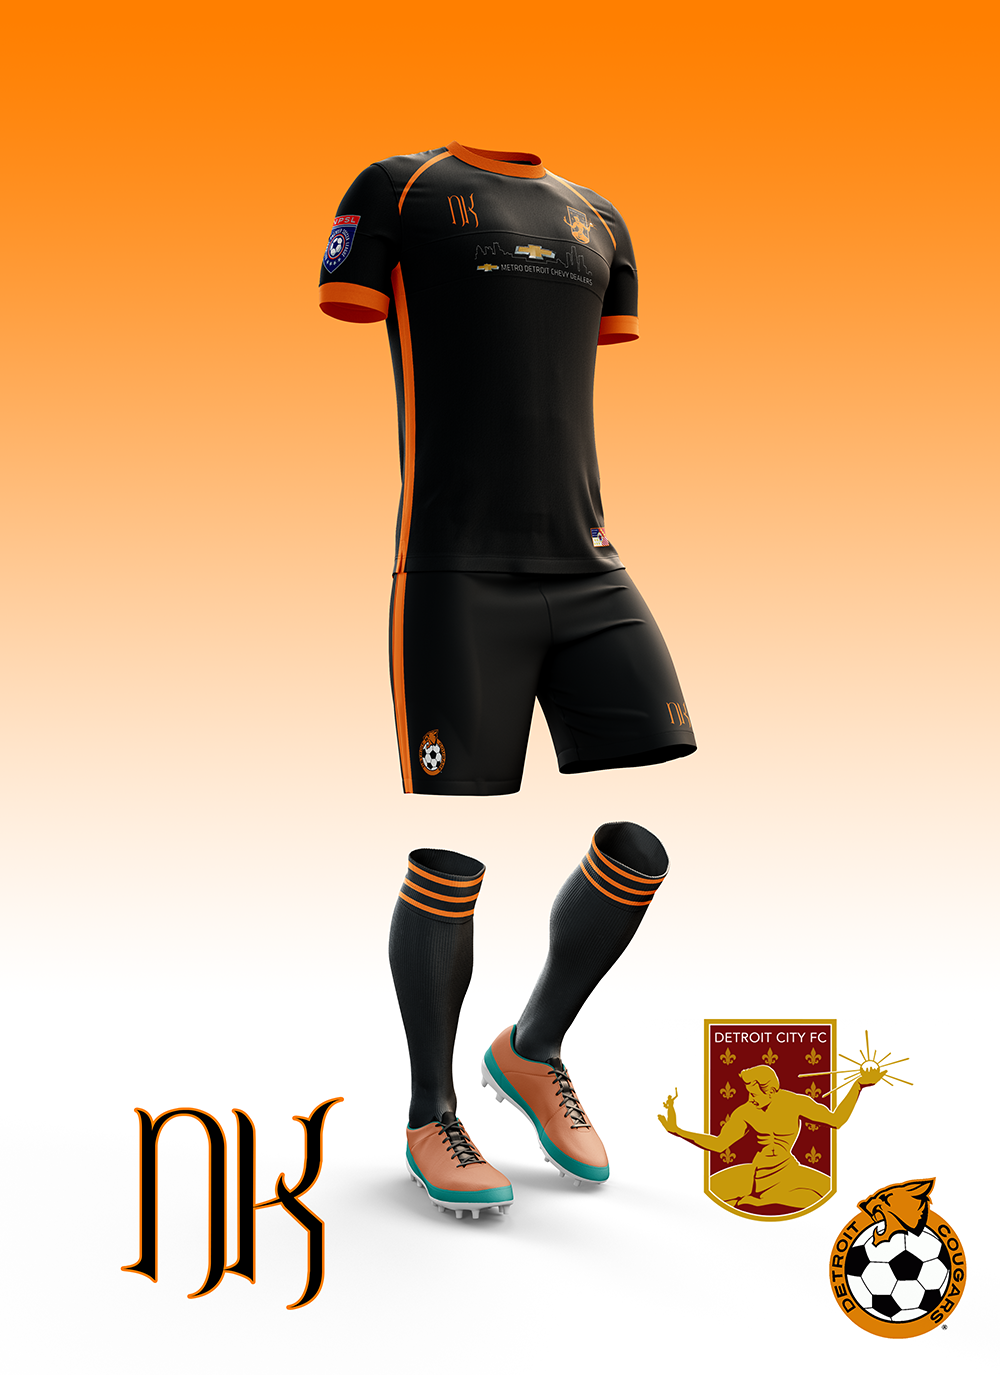 From there it is easy to deduce that ours will be black and orange. Here it  is folks, our first non-white secondary kits. That's pretty exciting.